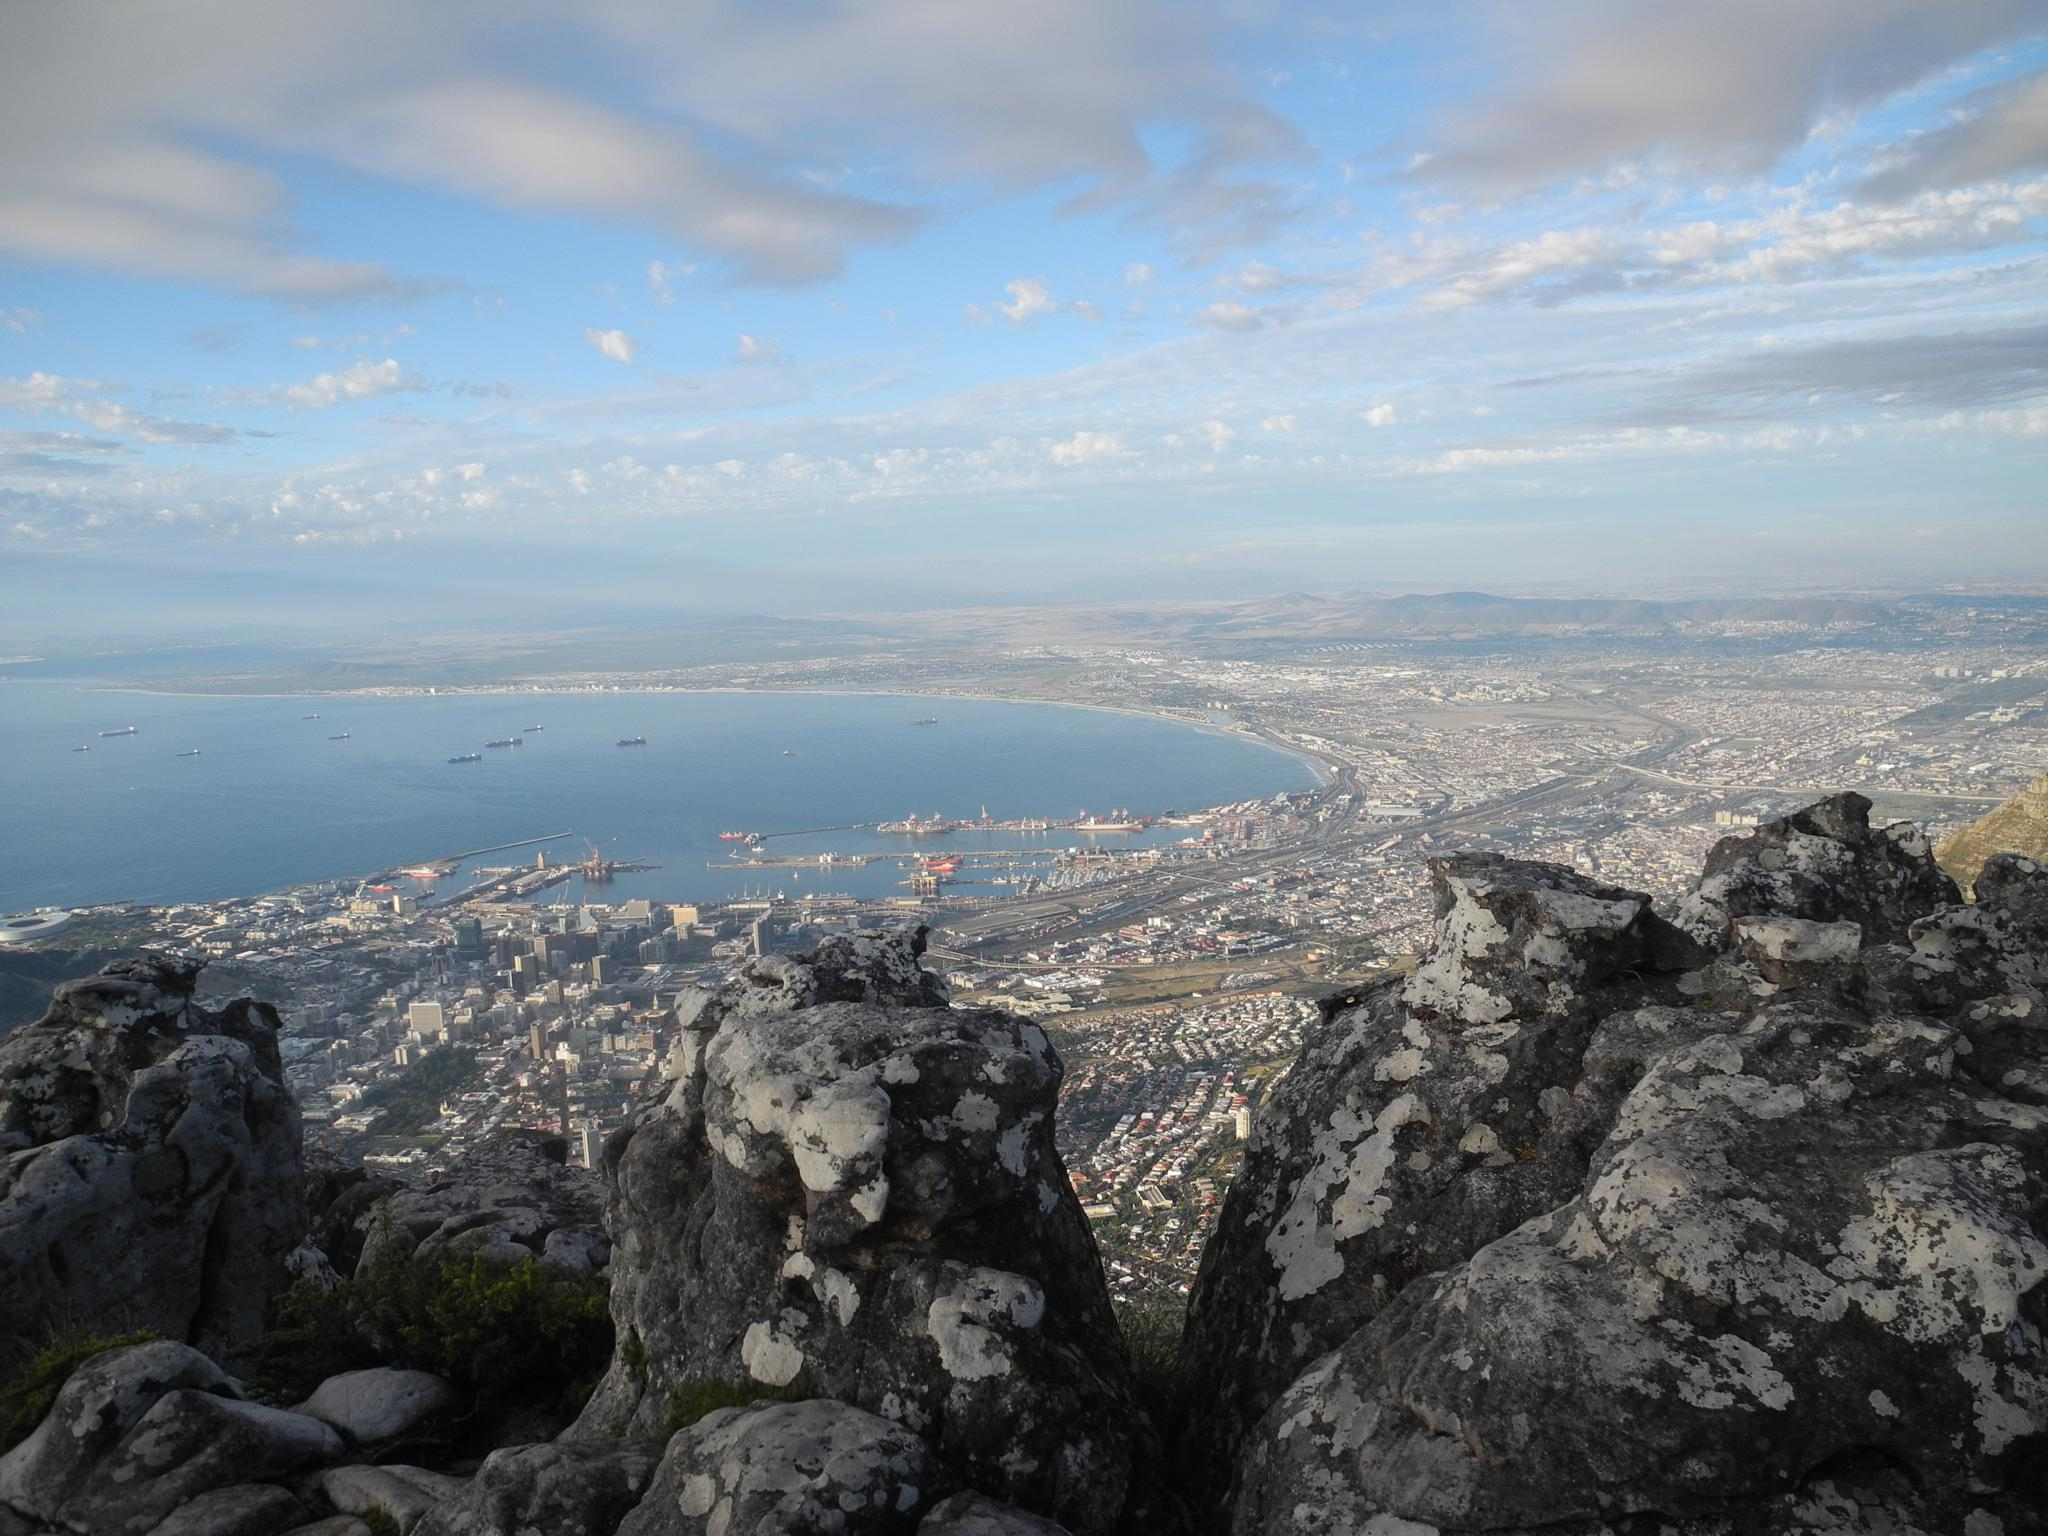 Cape Town from Table Mountain by nevanslombe